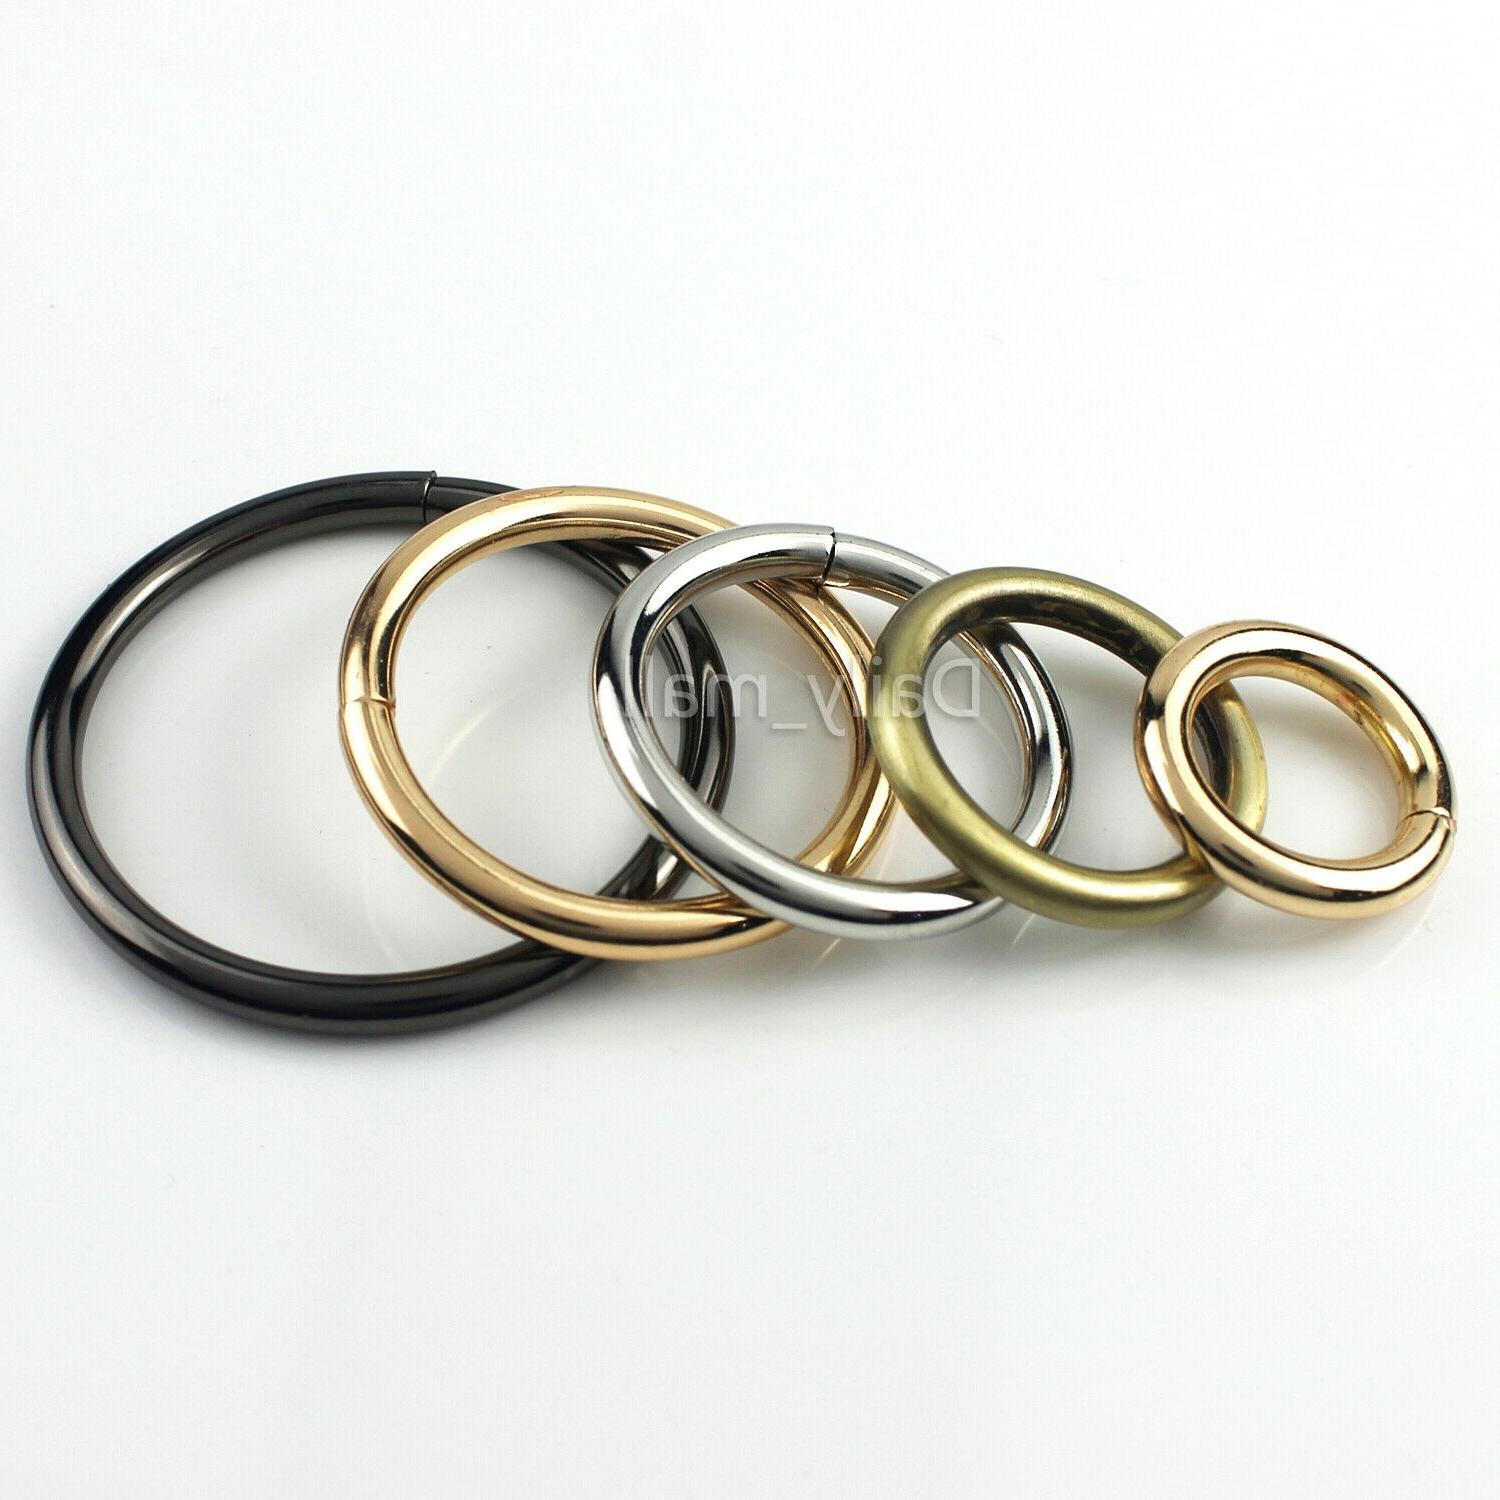 Solid Metal O-Ring Leather Garment Bag Strap Accessory